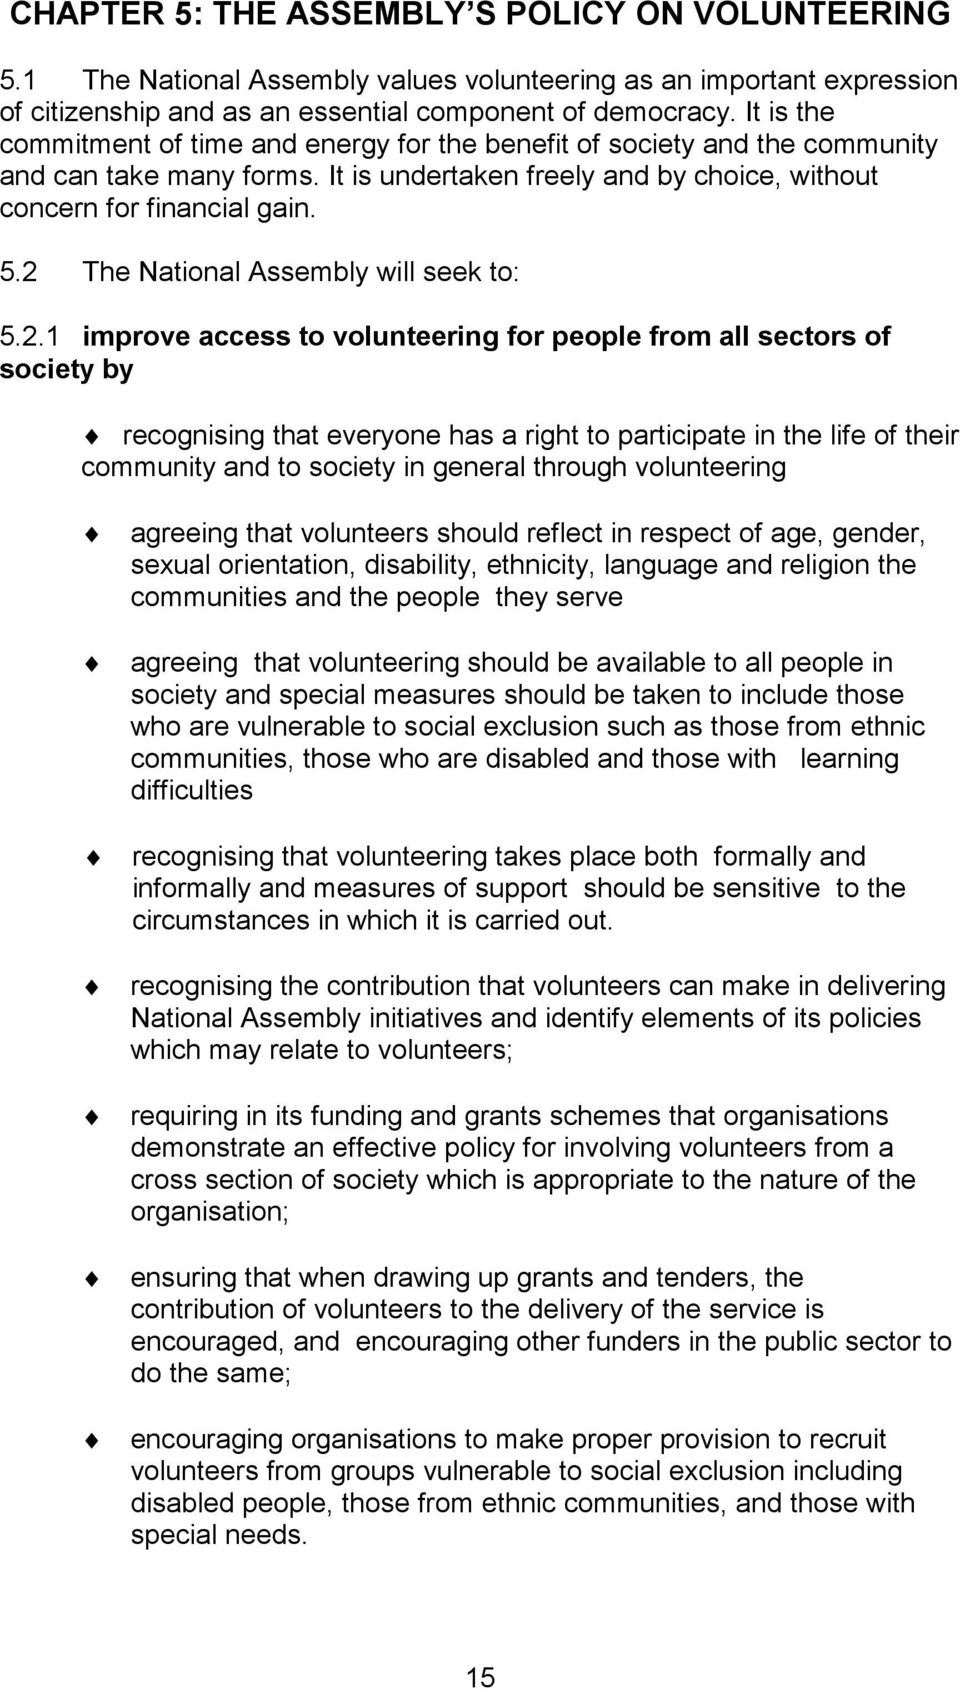 2 The National Assembly will seek to: 5.2.1 improve access to volunteering for people from all sectors of society by recognising that everyone has a right to participate in the life of their